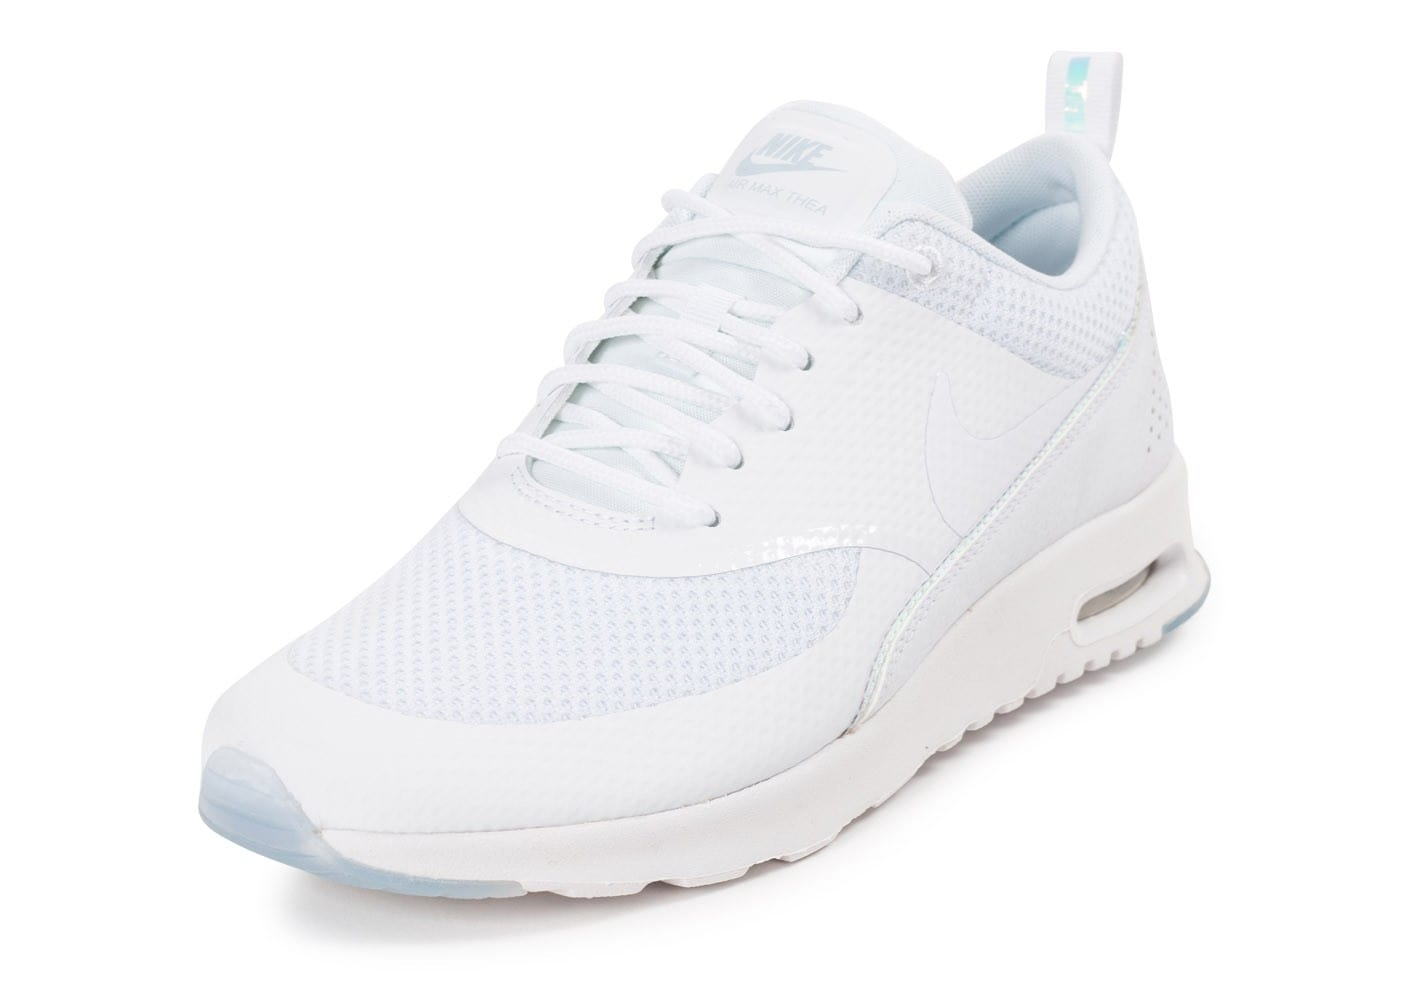 newest 182c1 6692f chaussures nike air max thea prm blanche iridescente vue avant